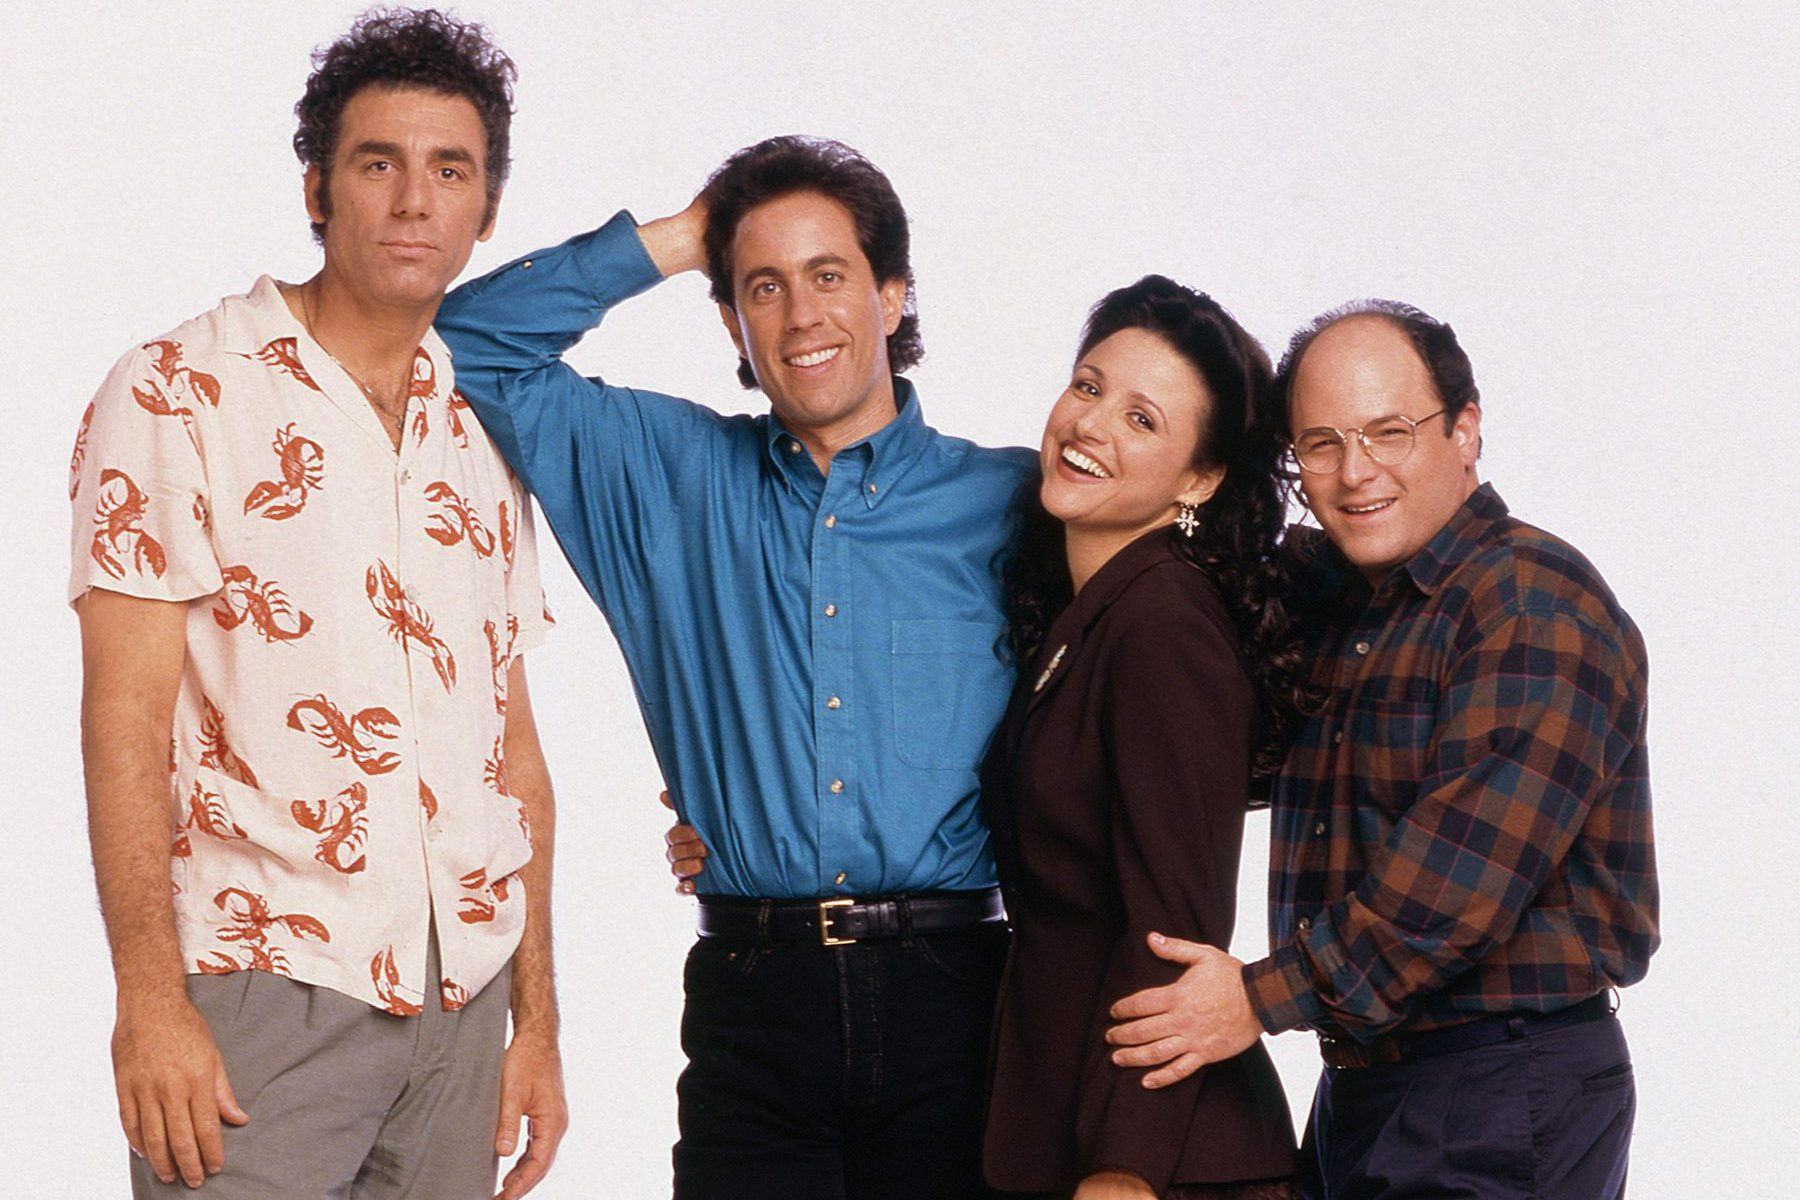 From Soup Nazis to Nuts: 100 Best 'Seinfeld' Characters